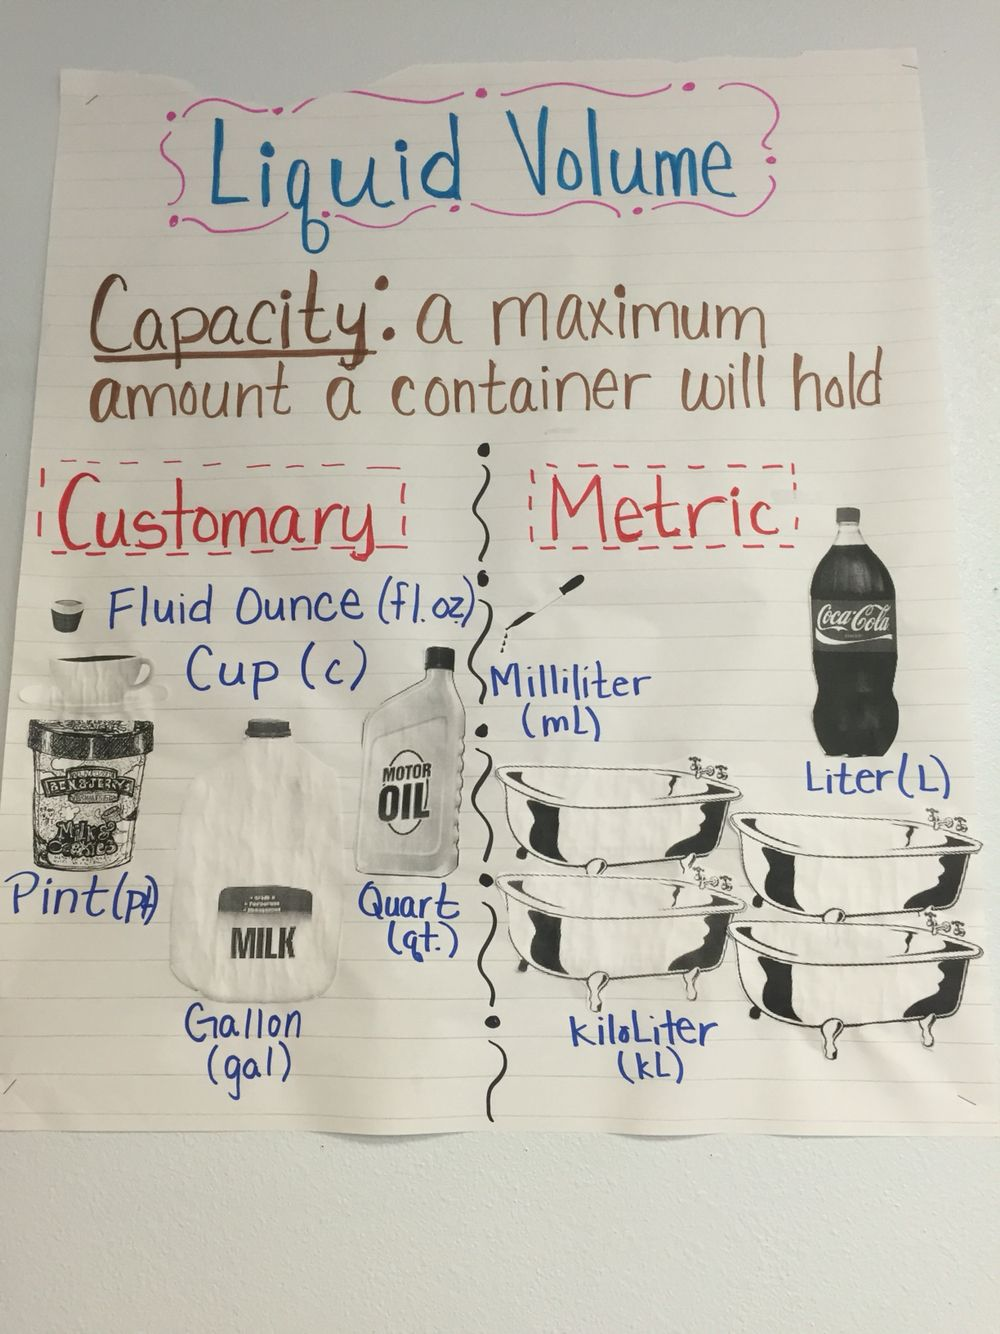 Volume and capacity conversion chart images free any chart examples liquid volume anchor chart capacity anchor chart 3rd grade liquid volume anchor chart capacity anchor chart geenschuldenfo Images